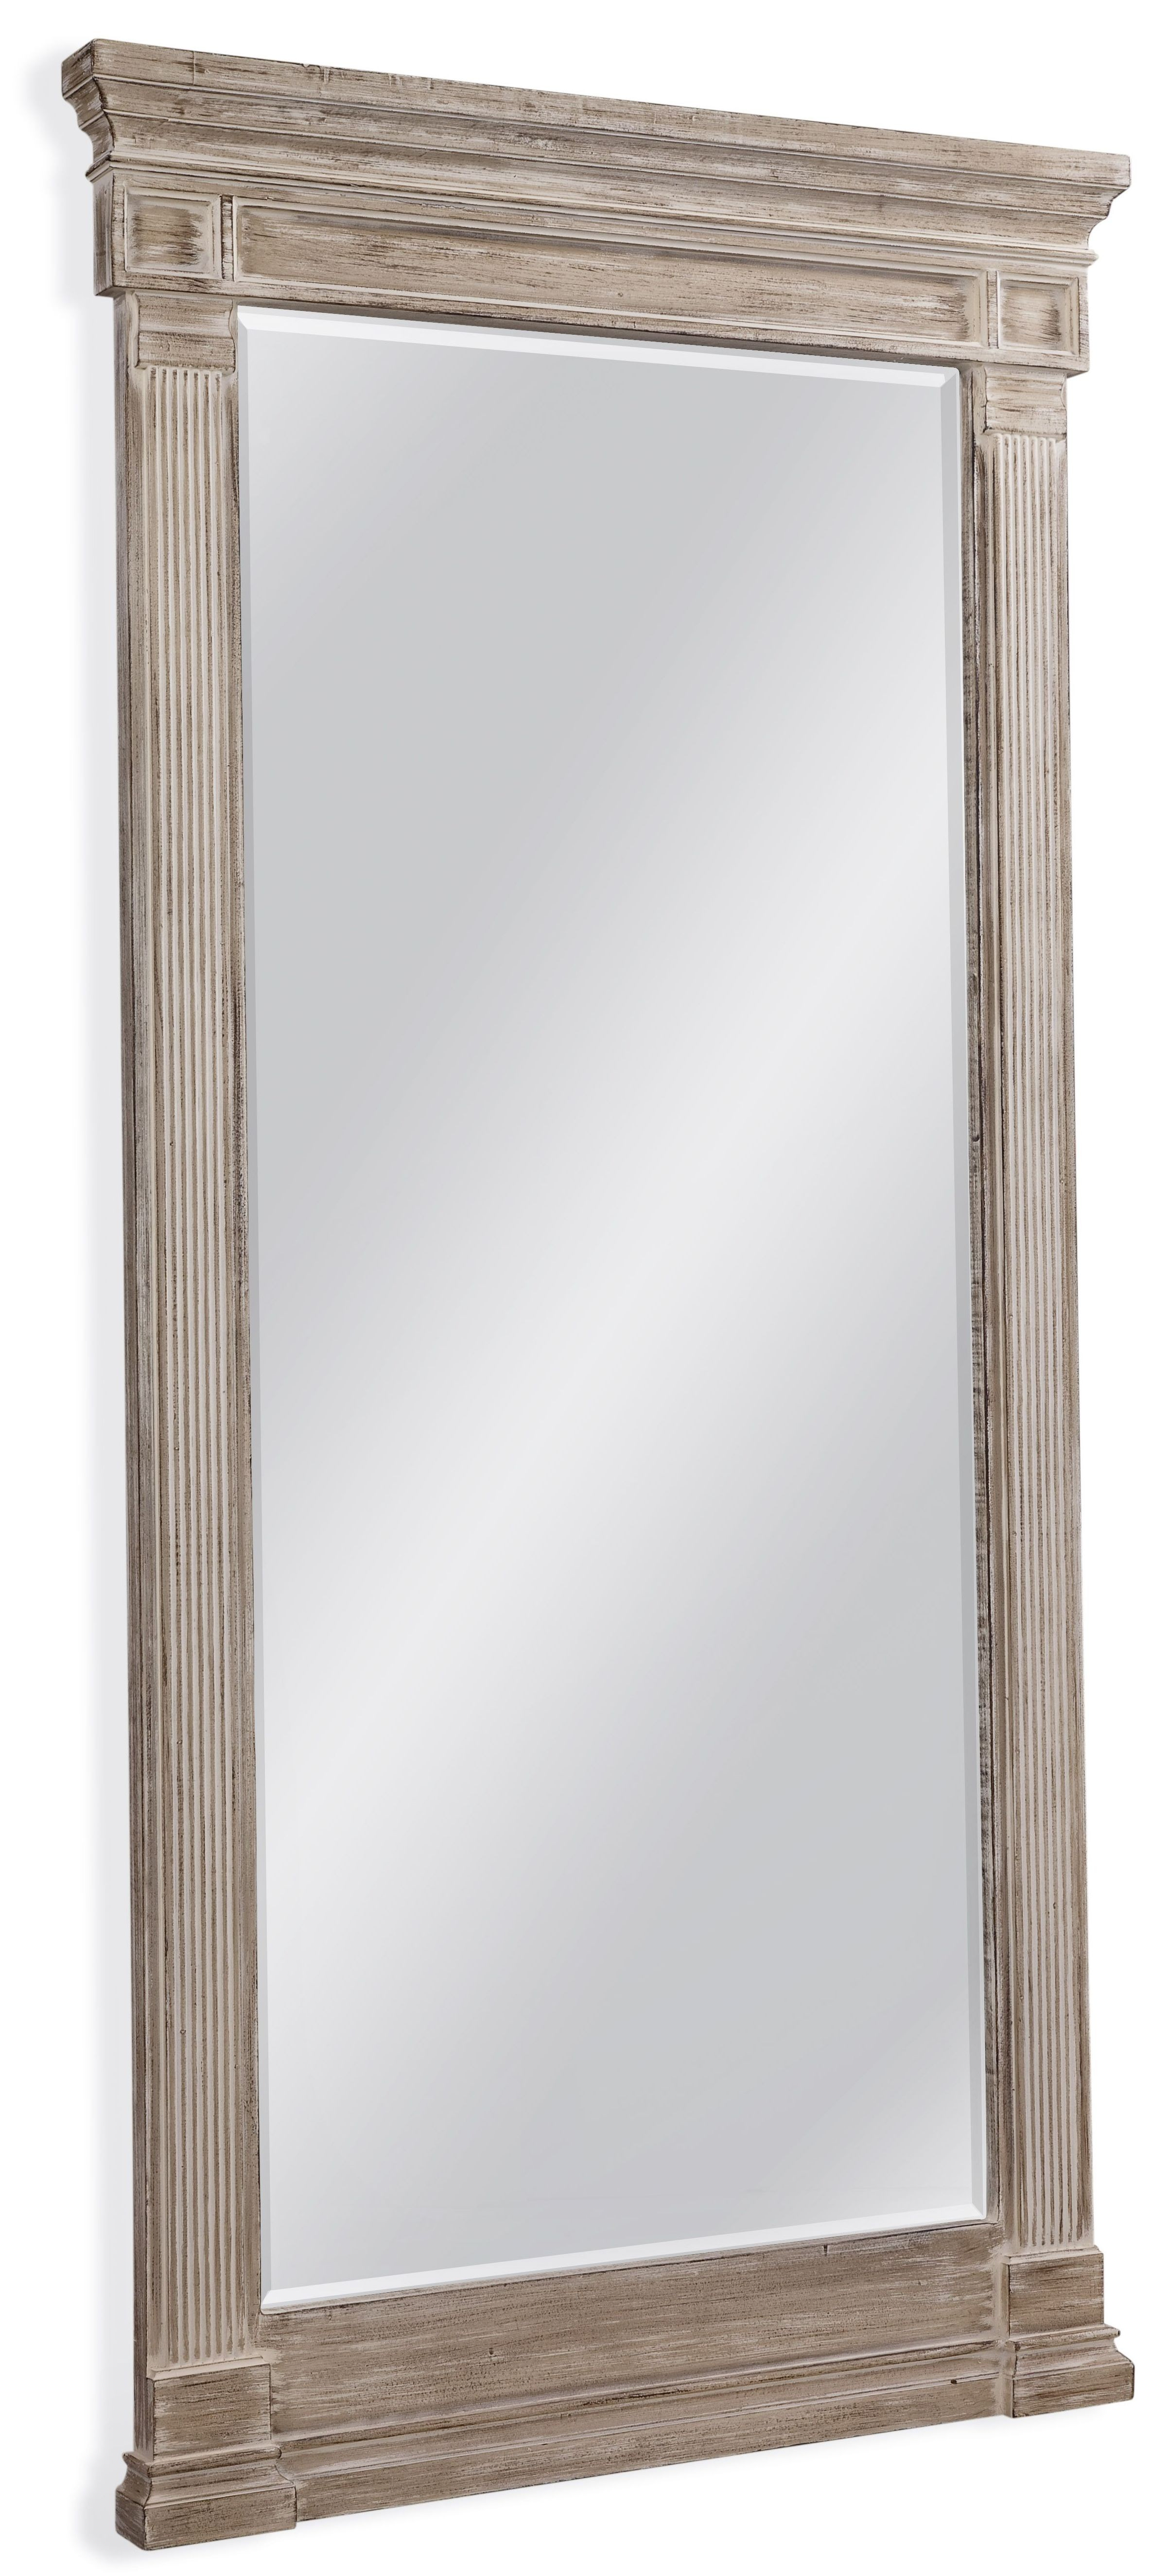 Ione leaner mirror m3835bec bassett mirror for Leaner mirror